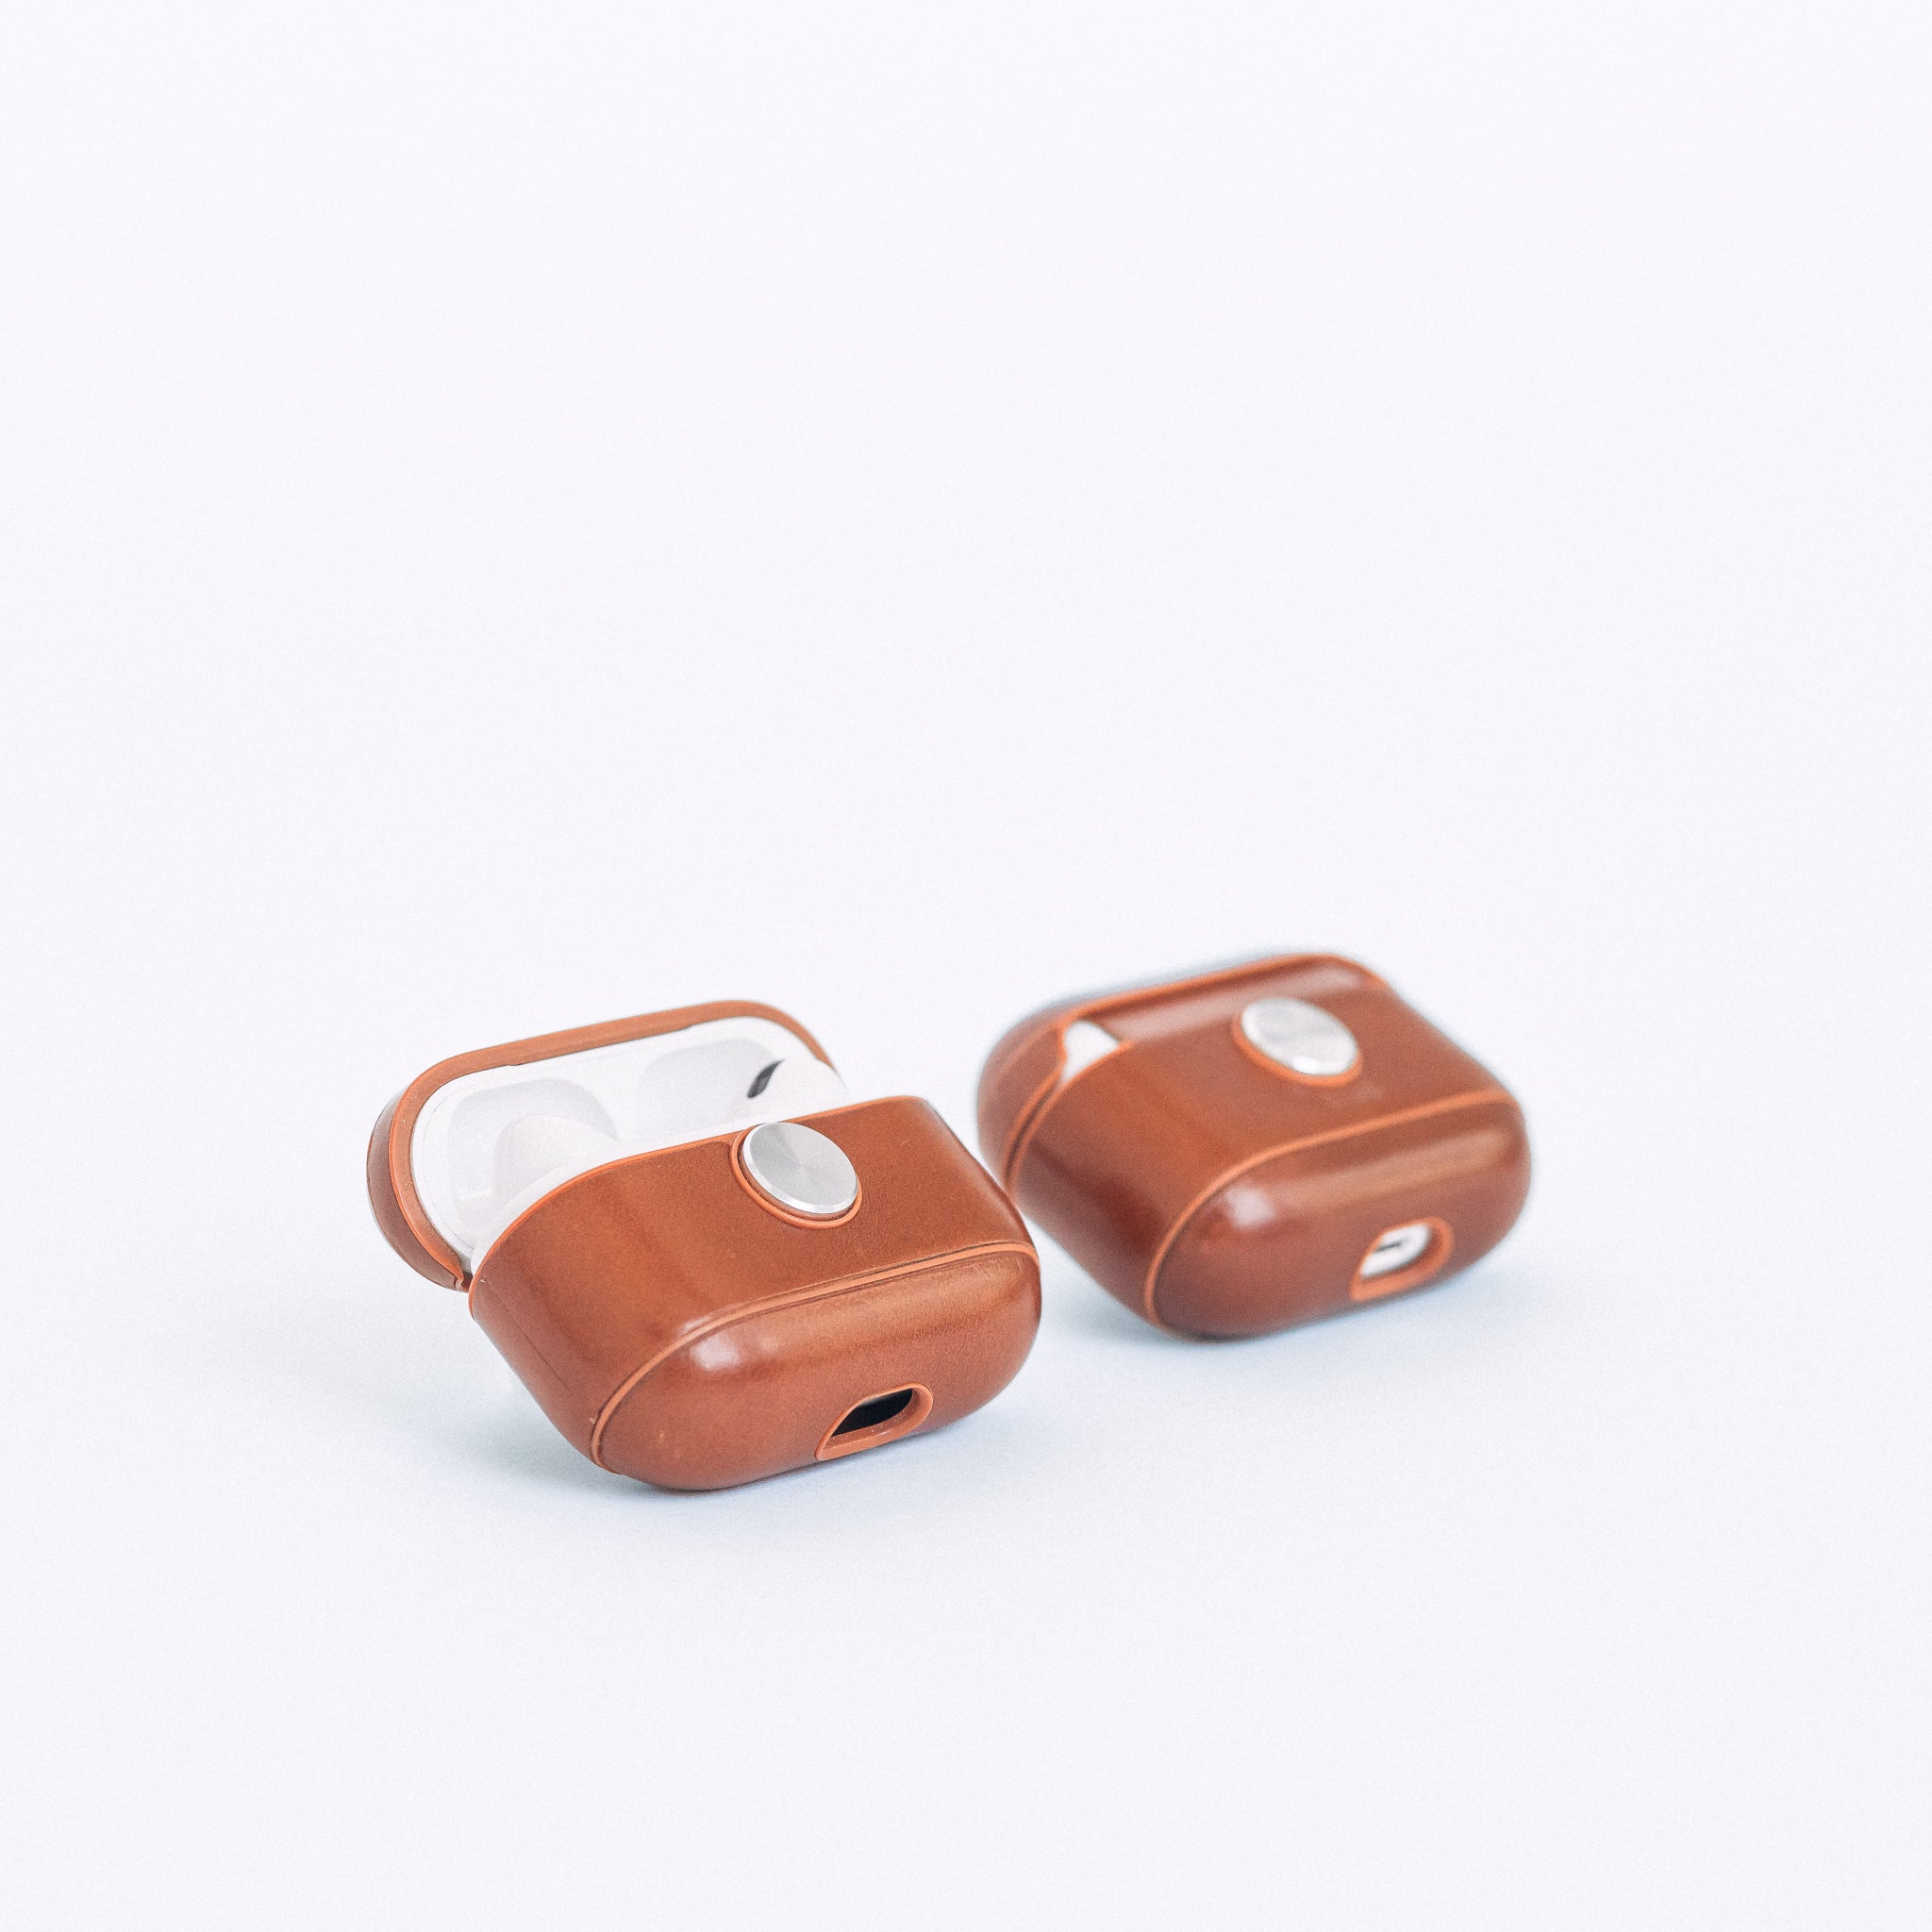 Airpods Pro Spinning Case